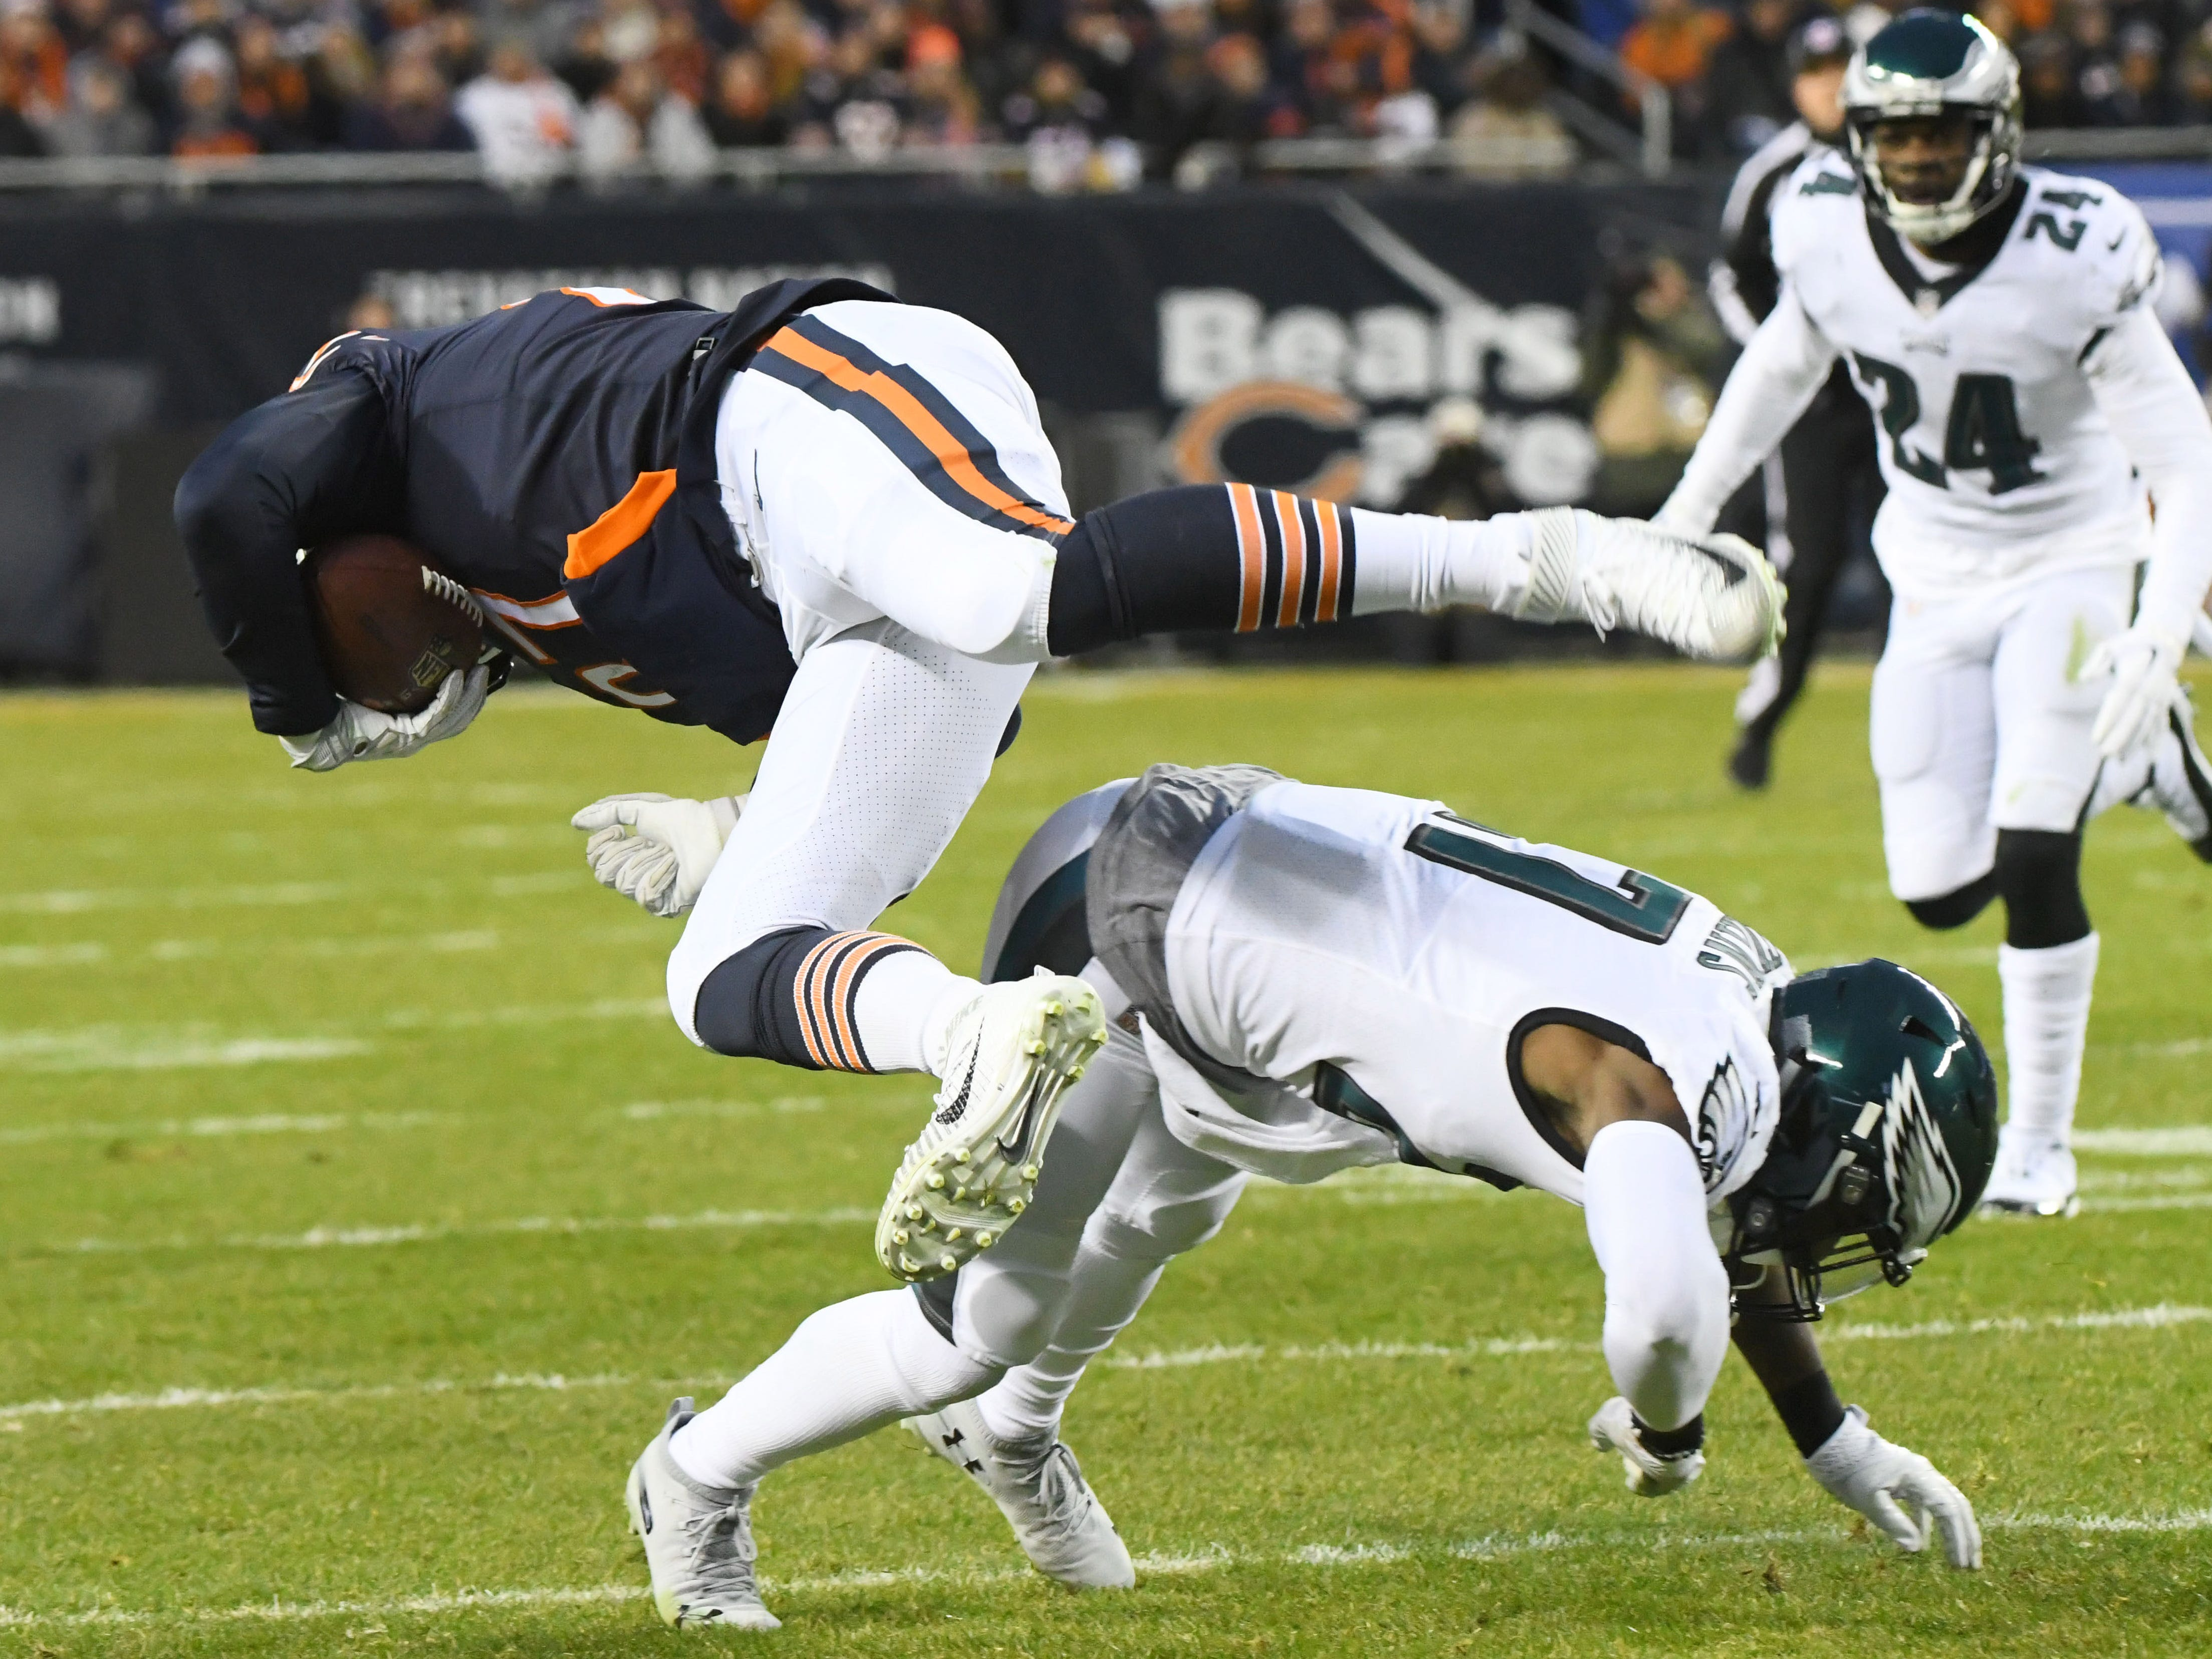 Chicago Bears tight end Adam Shaheen (87) is tackled by Philadelphia Eagles strong safety Malcolm Jenkins (27) in the first half of a NFC Wild Card playoff football game at Soldier Field.